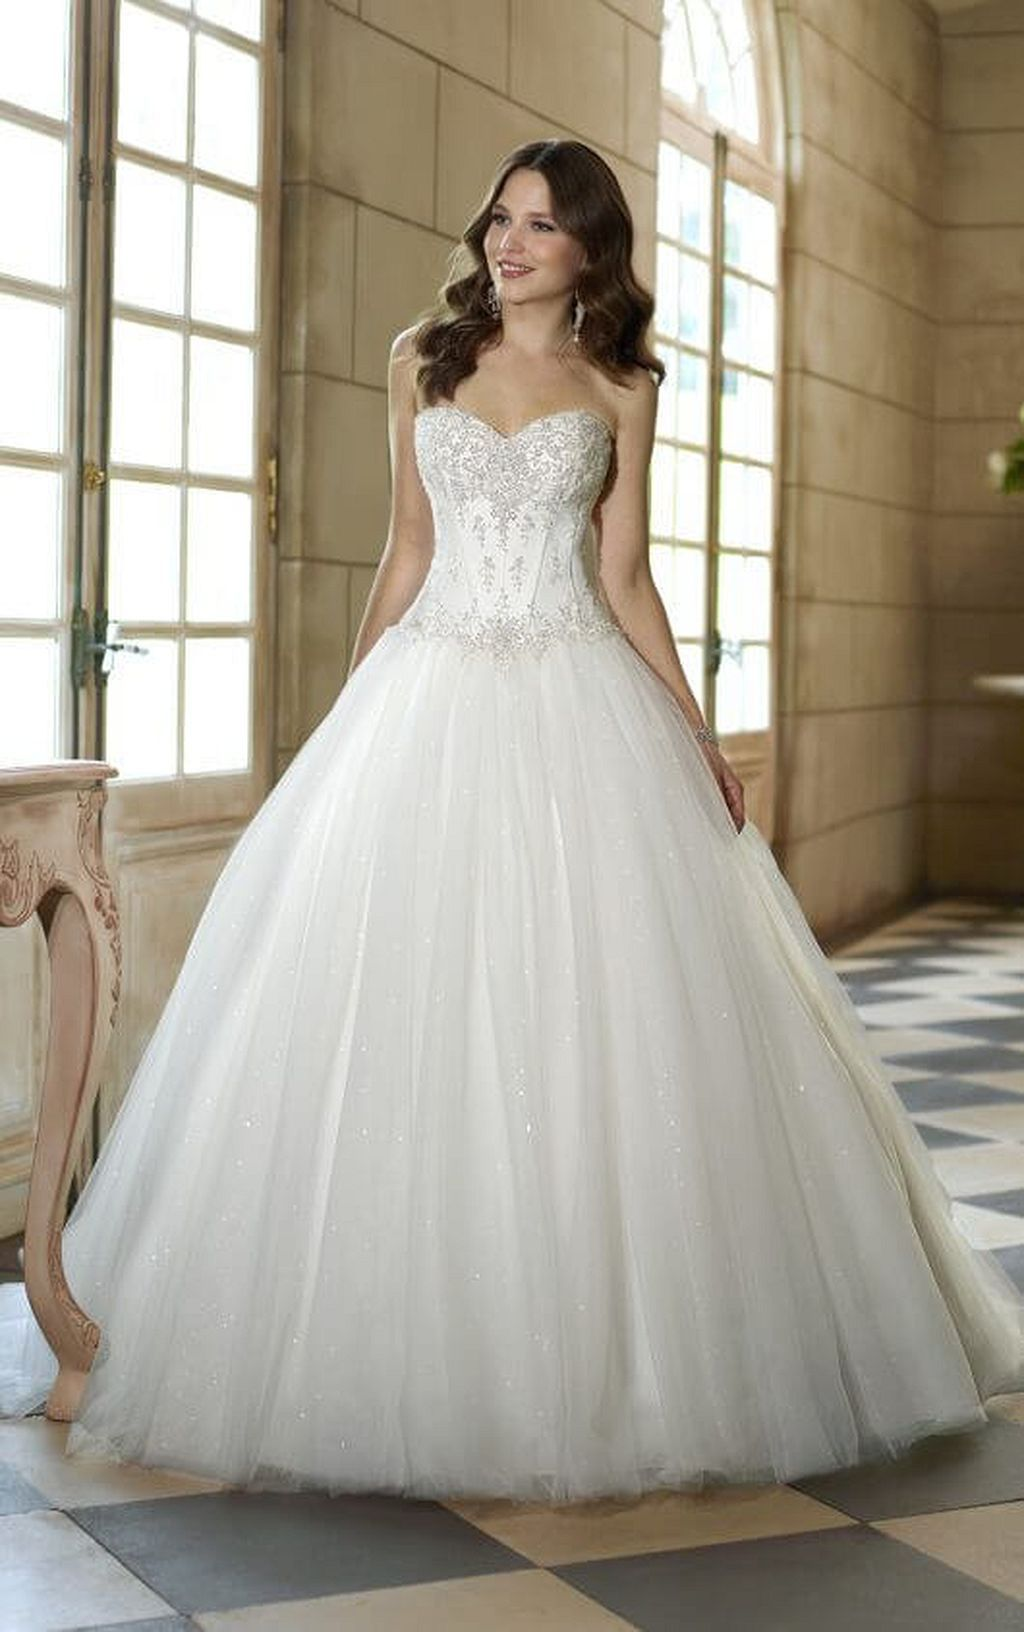 Amazing 100+ Princess Dresses Ideas https://weddmagz.com/3999-2/